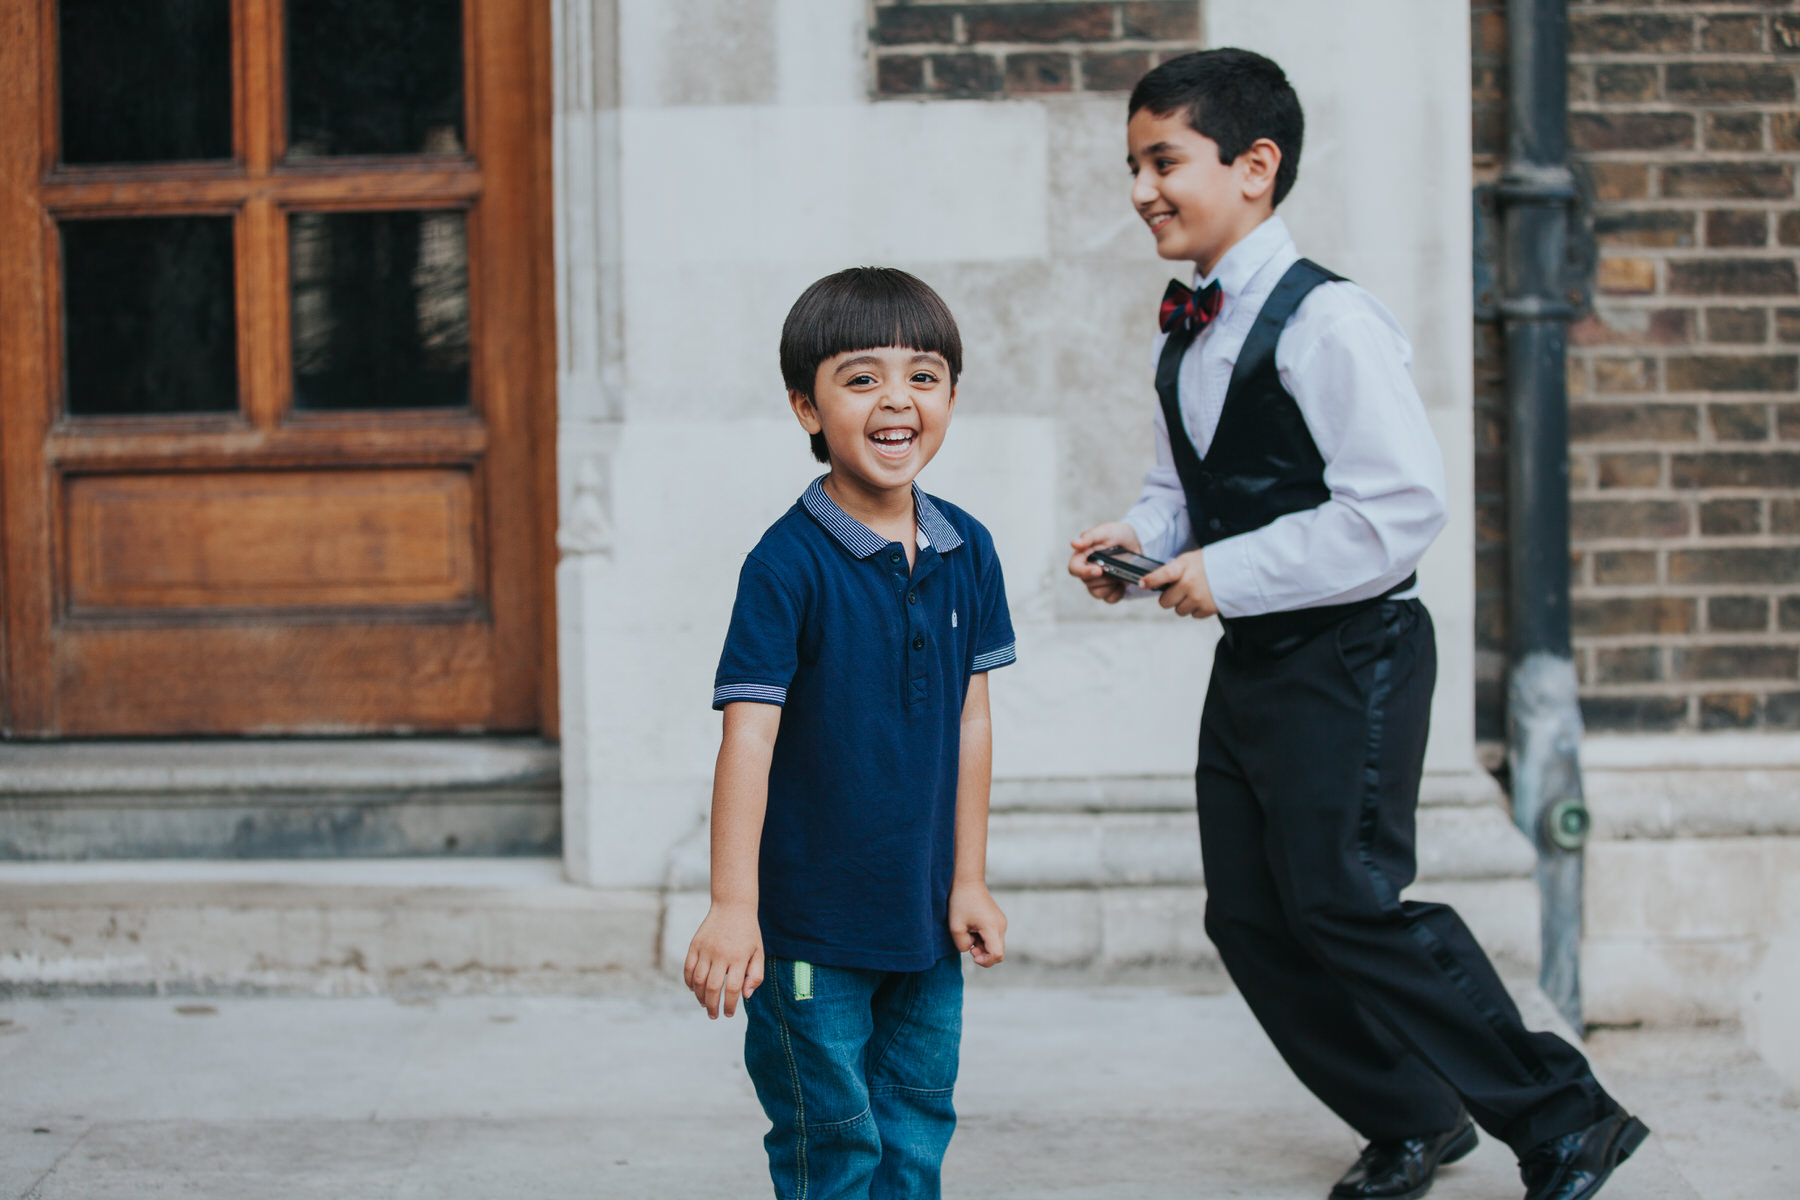 kids at Middle Temple wedding bouncing around.jpg